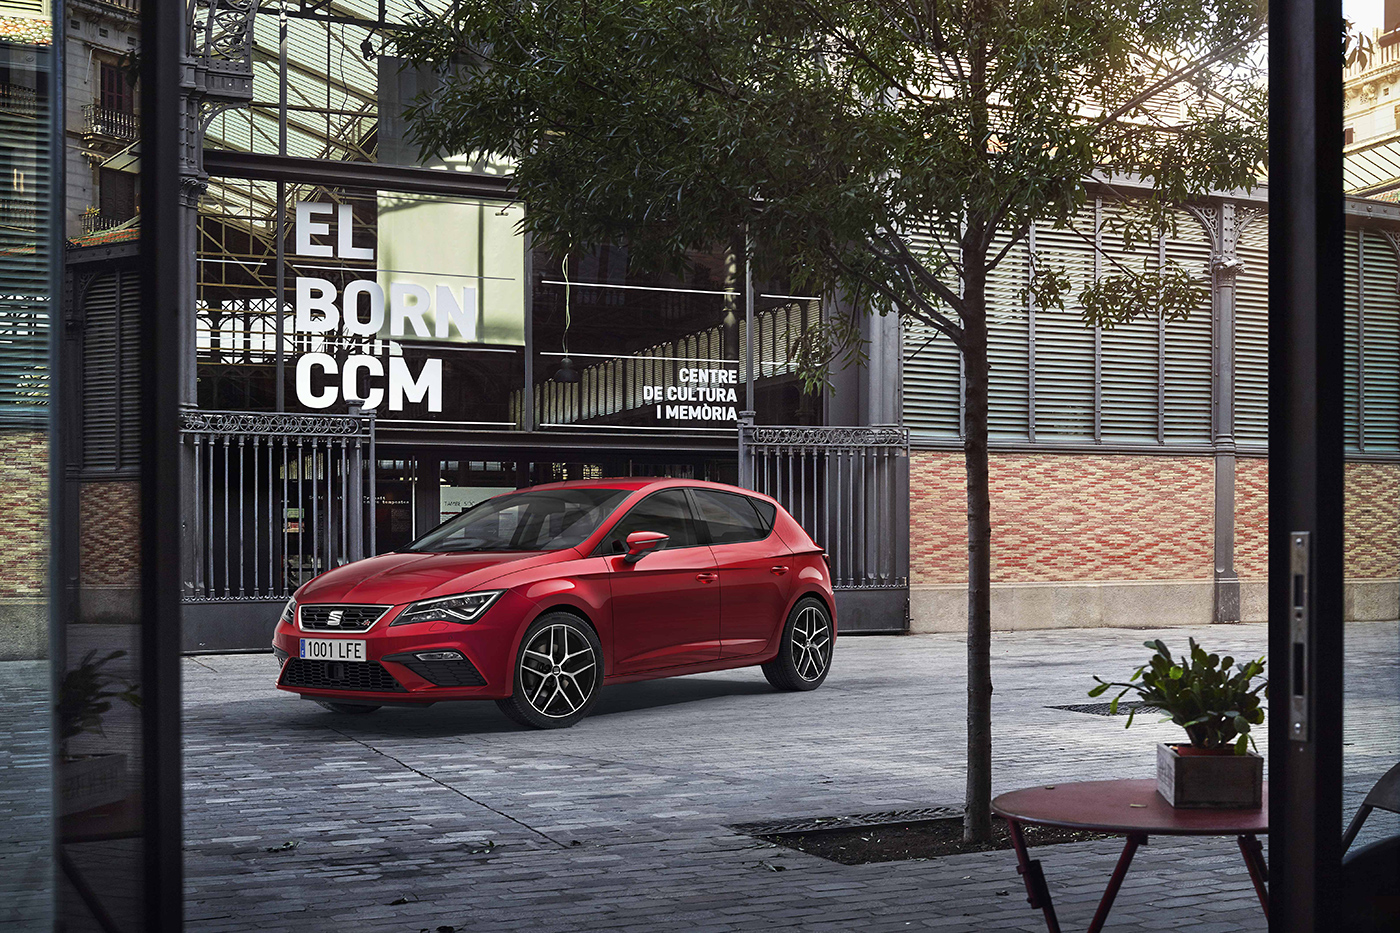 Seat Leon 2017 gets Facelift and New Tech